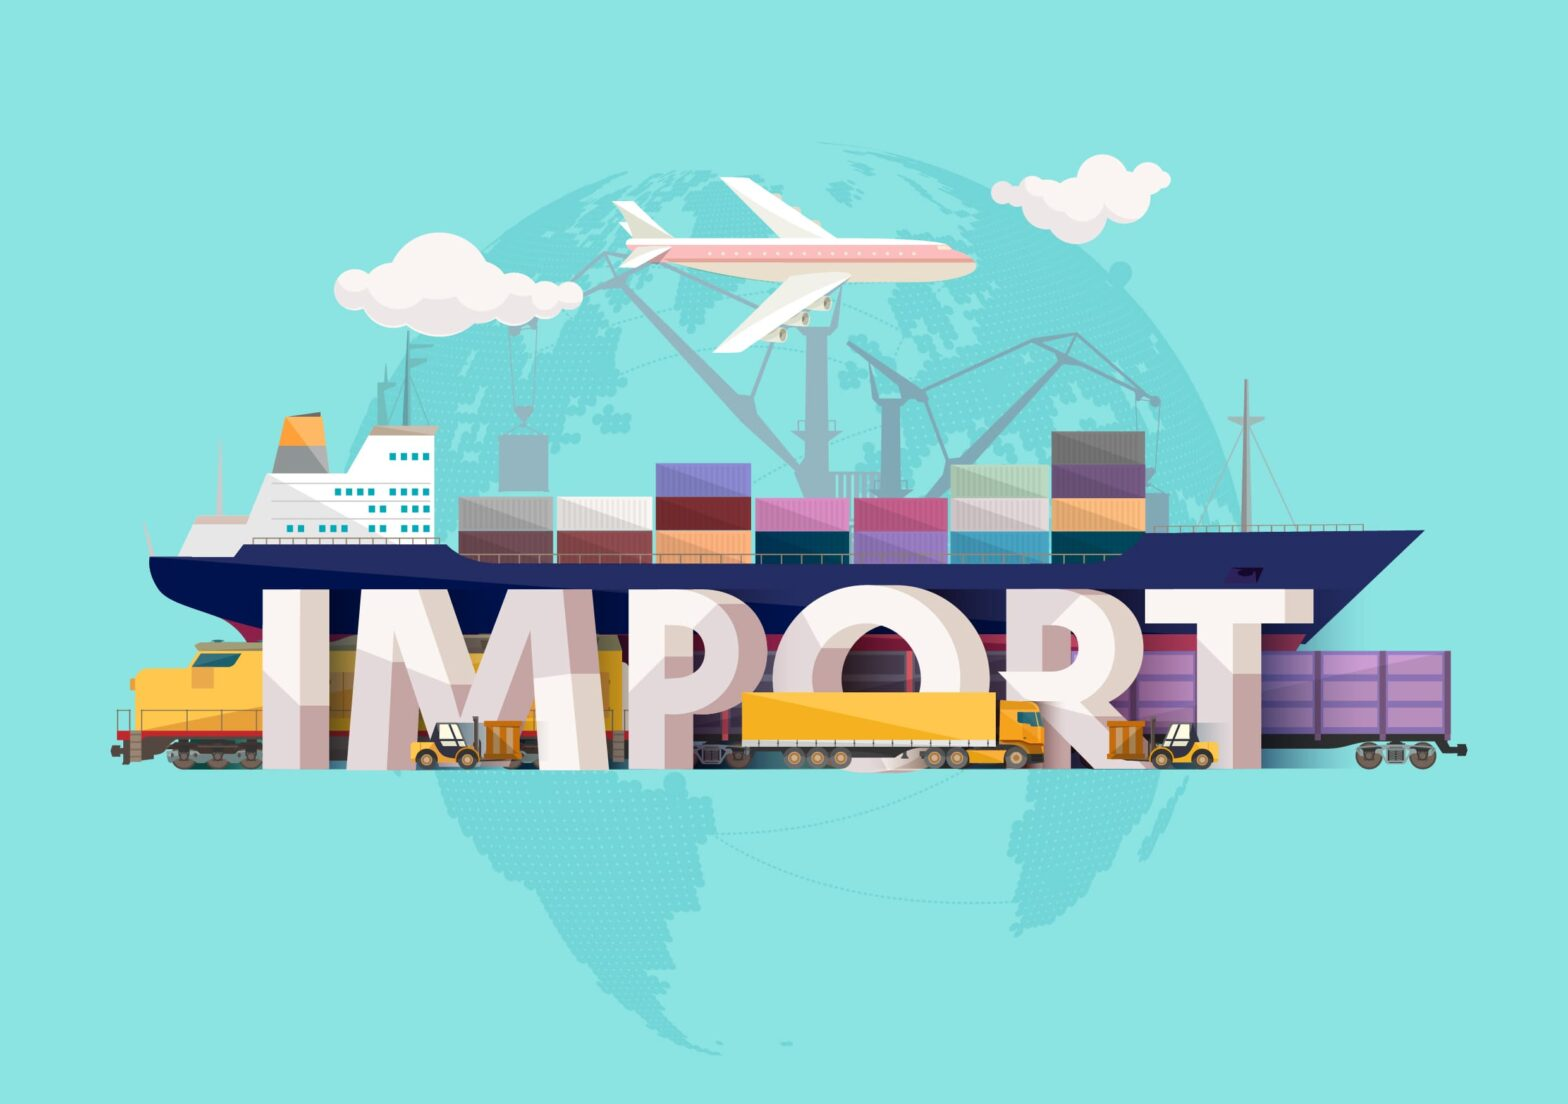 India will be 3rd largest importer by 2050